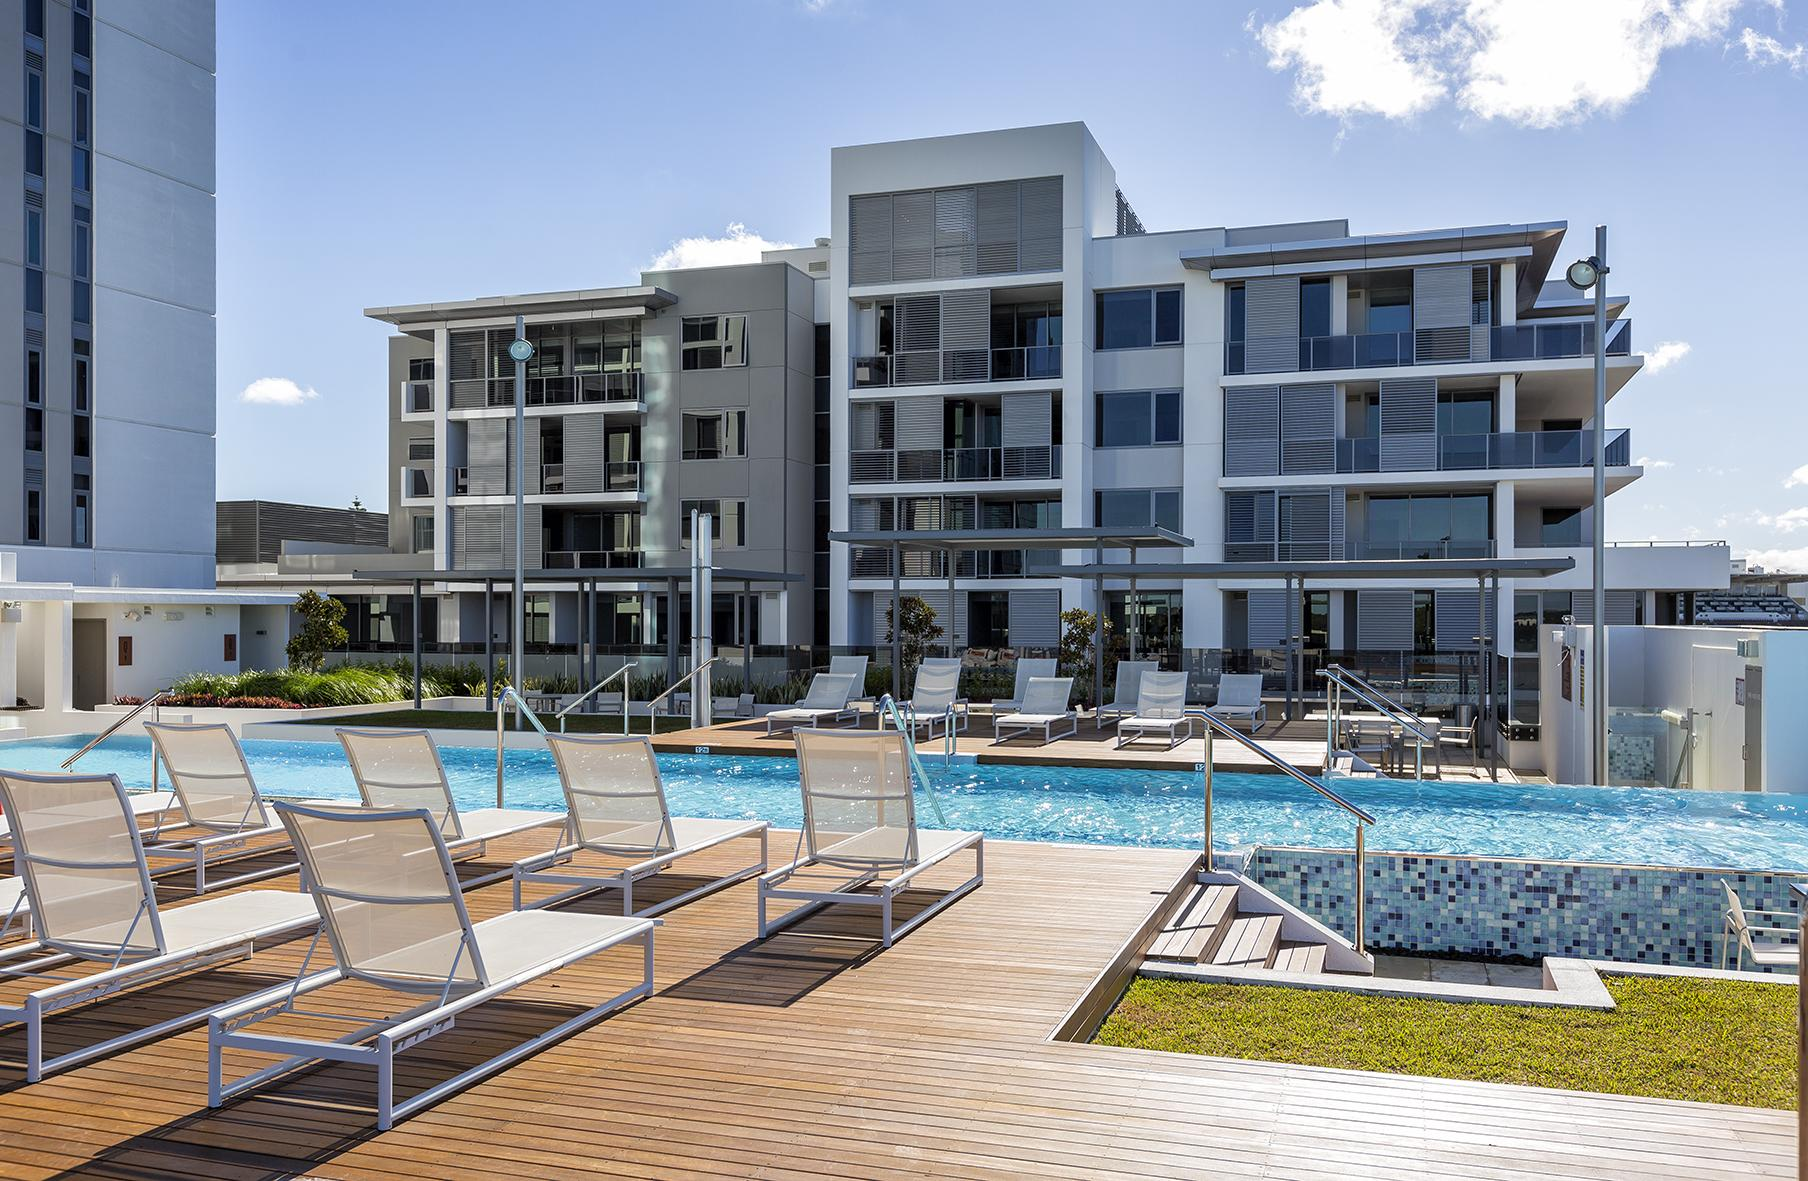 Pool at Riverside Parade Apartments by Fraser, Centre, Perth